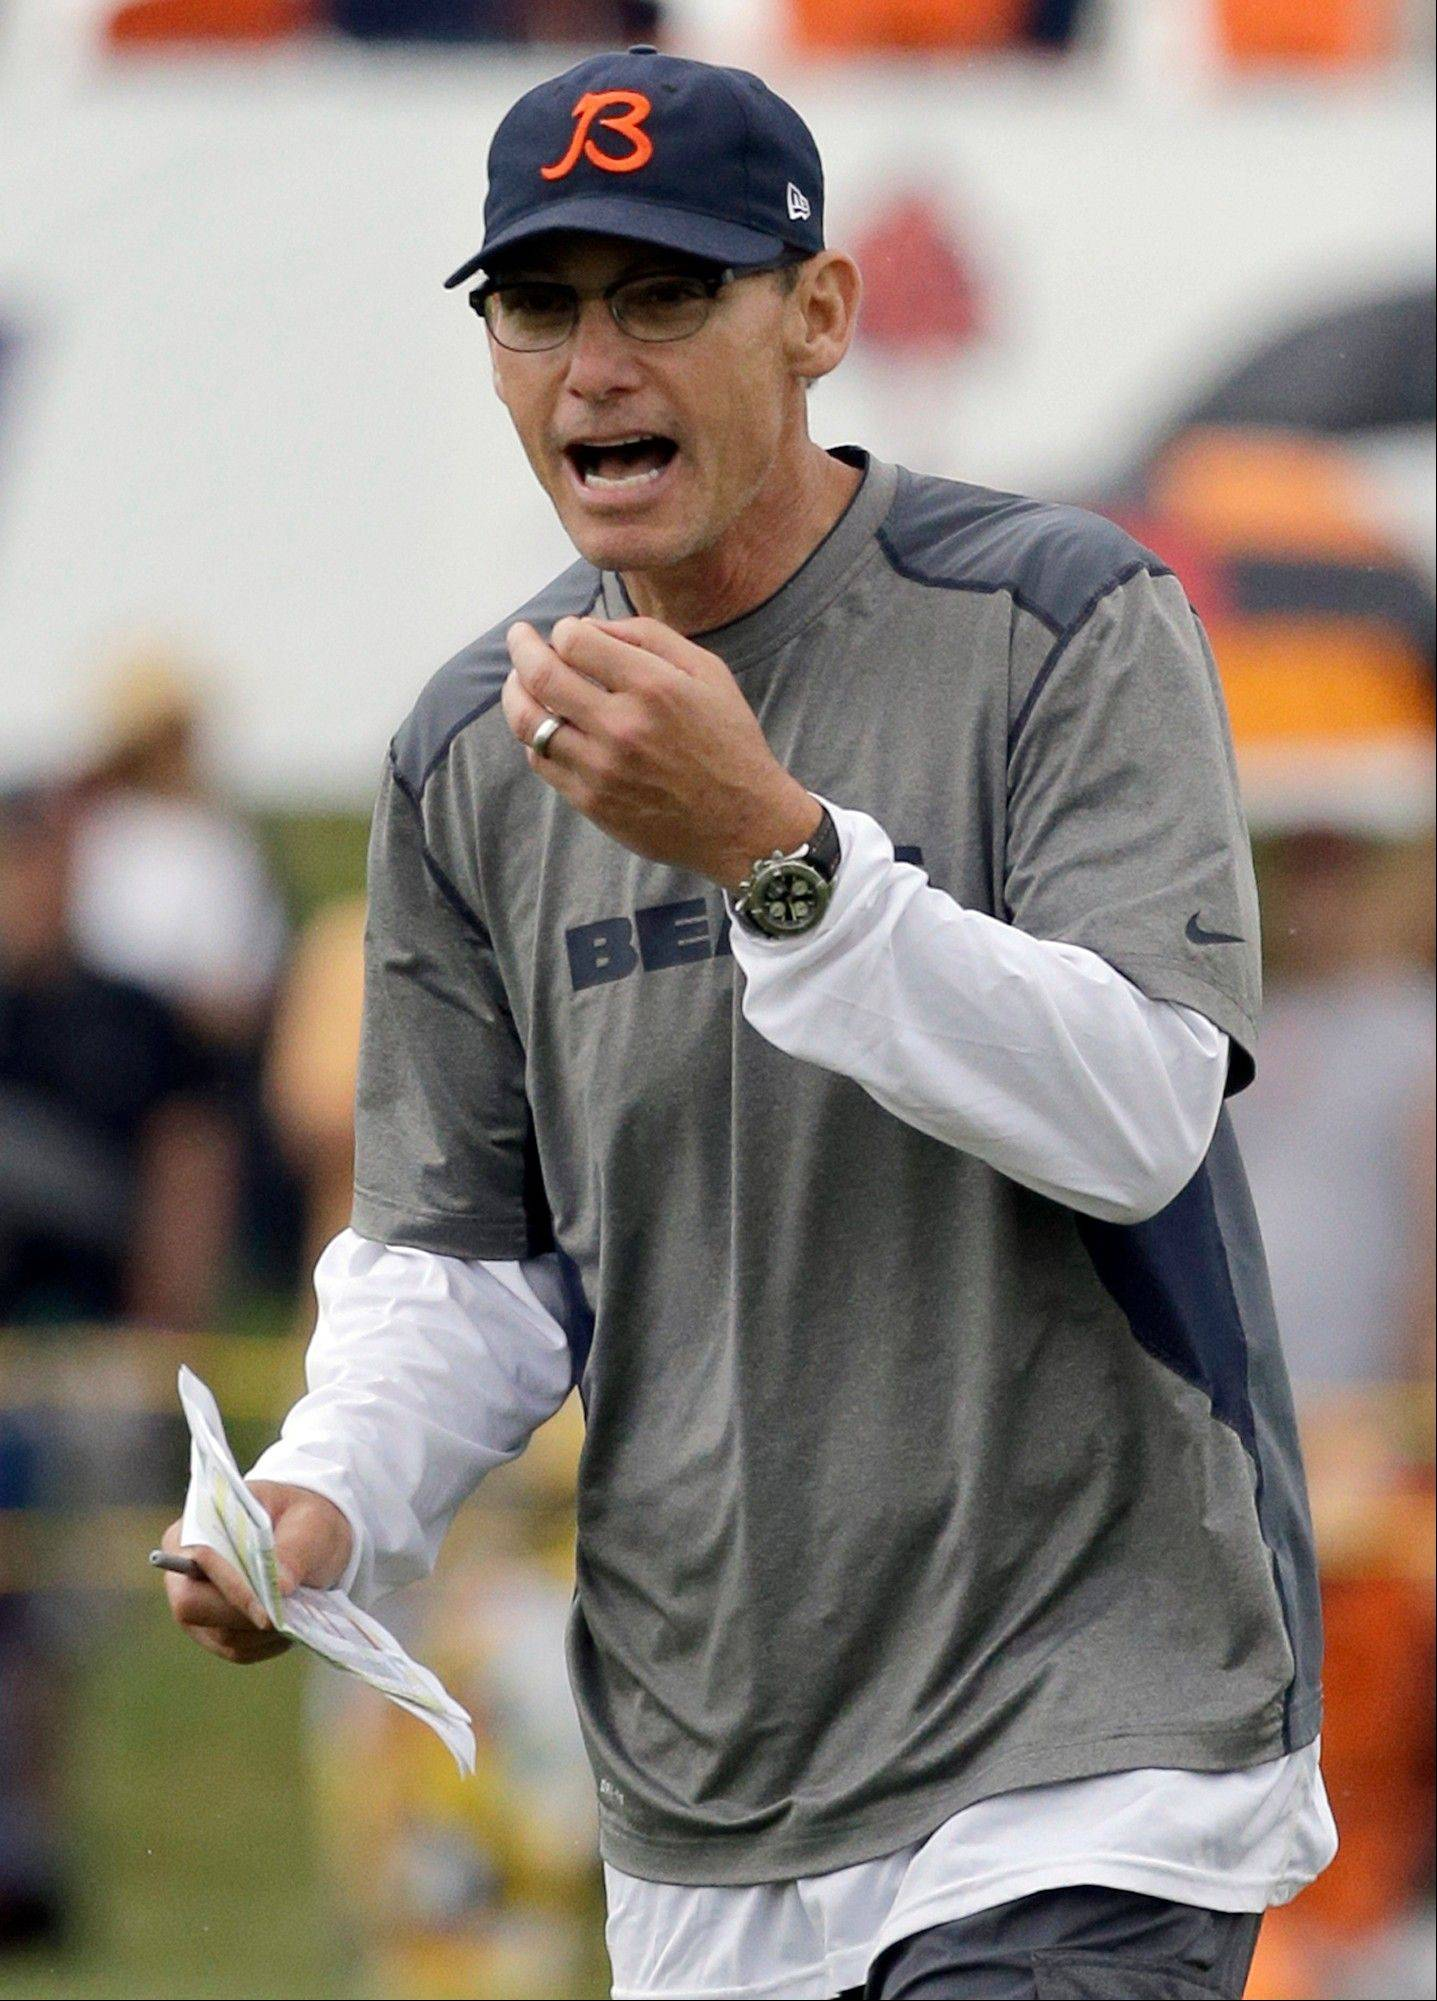 Chicago Bears head coach Marc Trestman yells to his team.